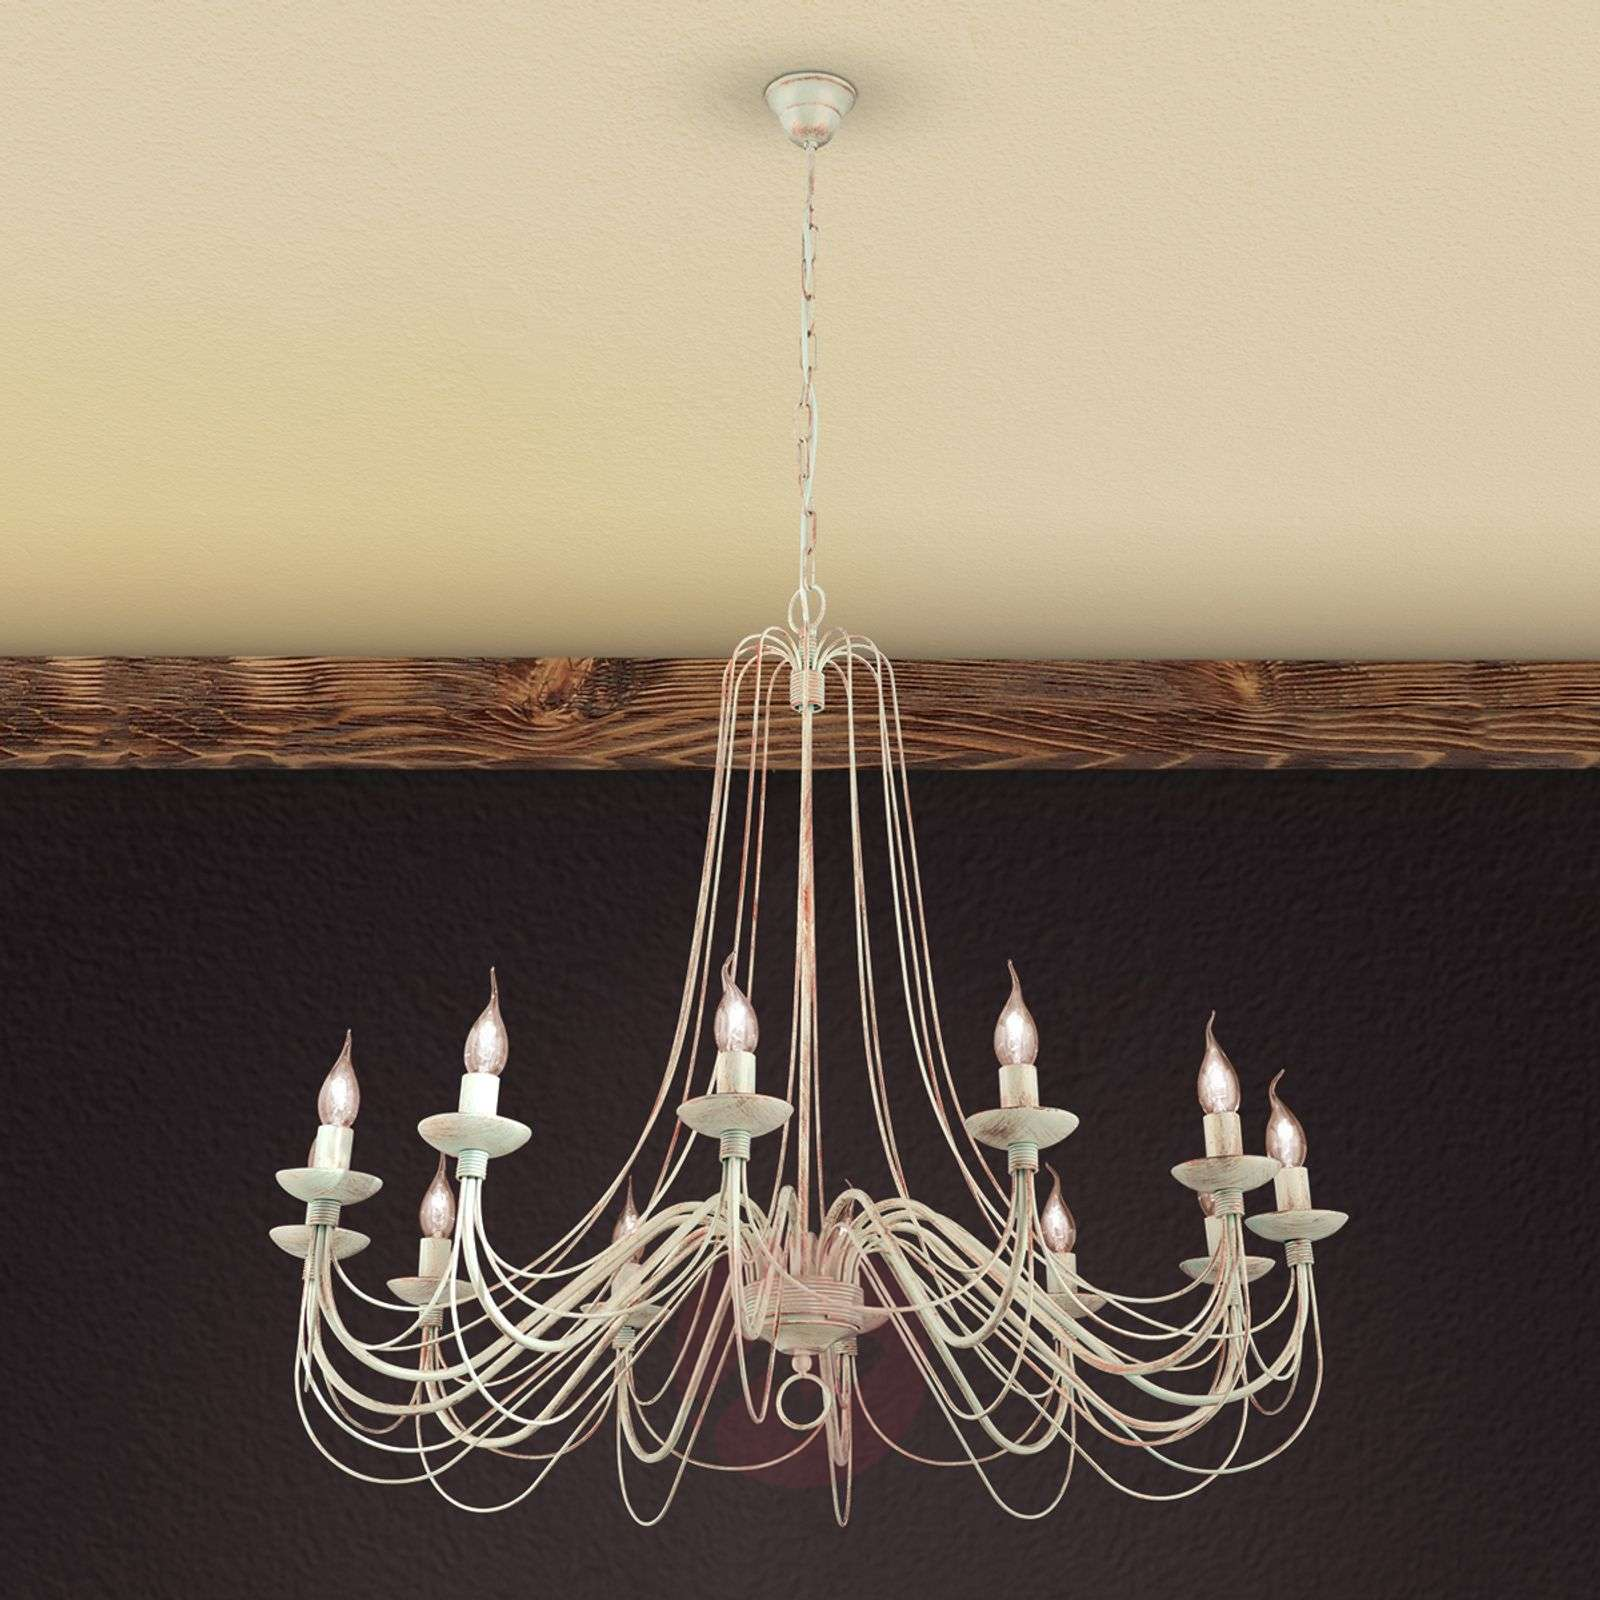 Rustic Country Style Chandelier Antonina 12 Light